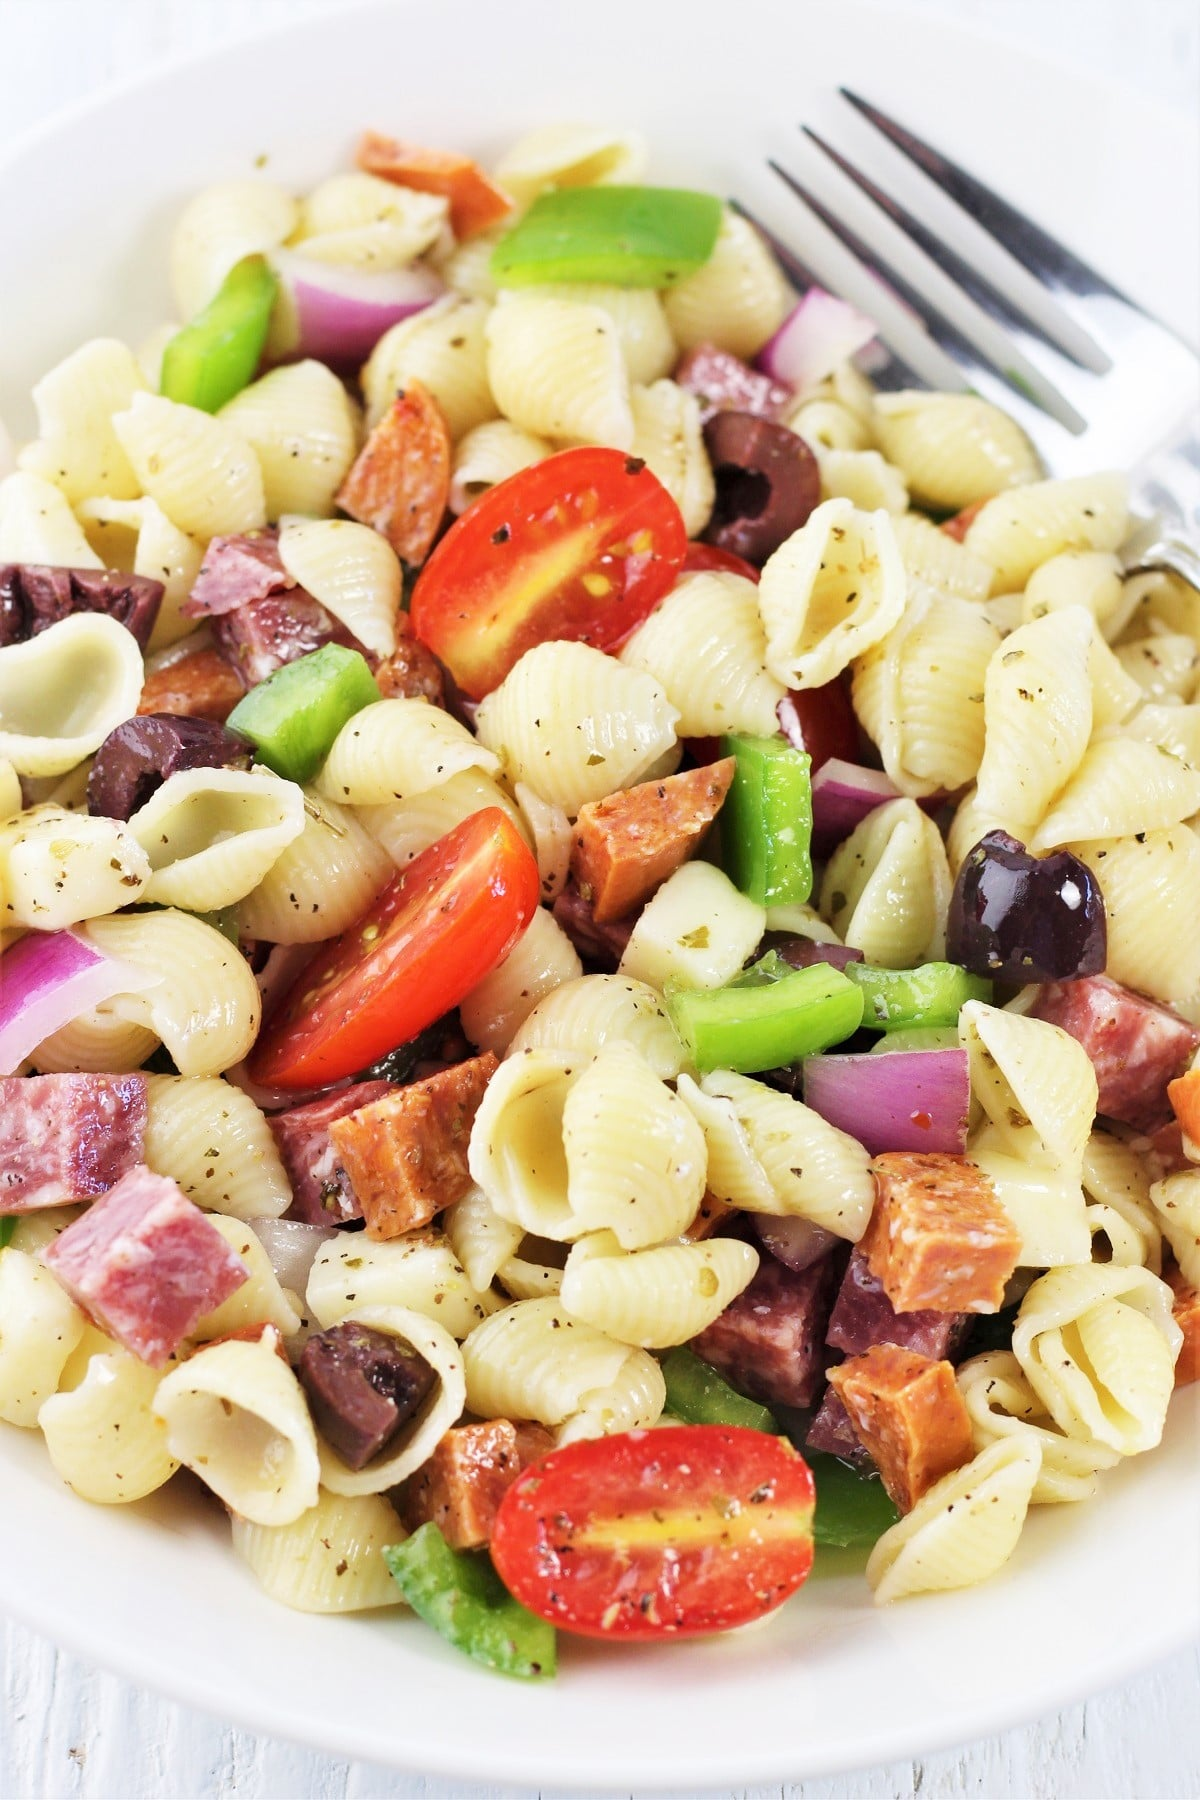 antipasto pasta salad in a white bowl with a fork